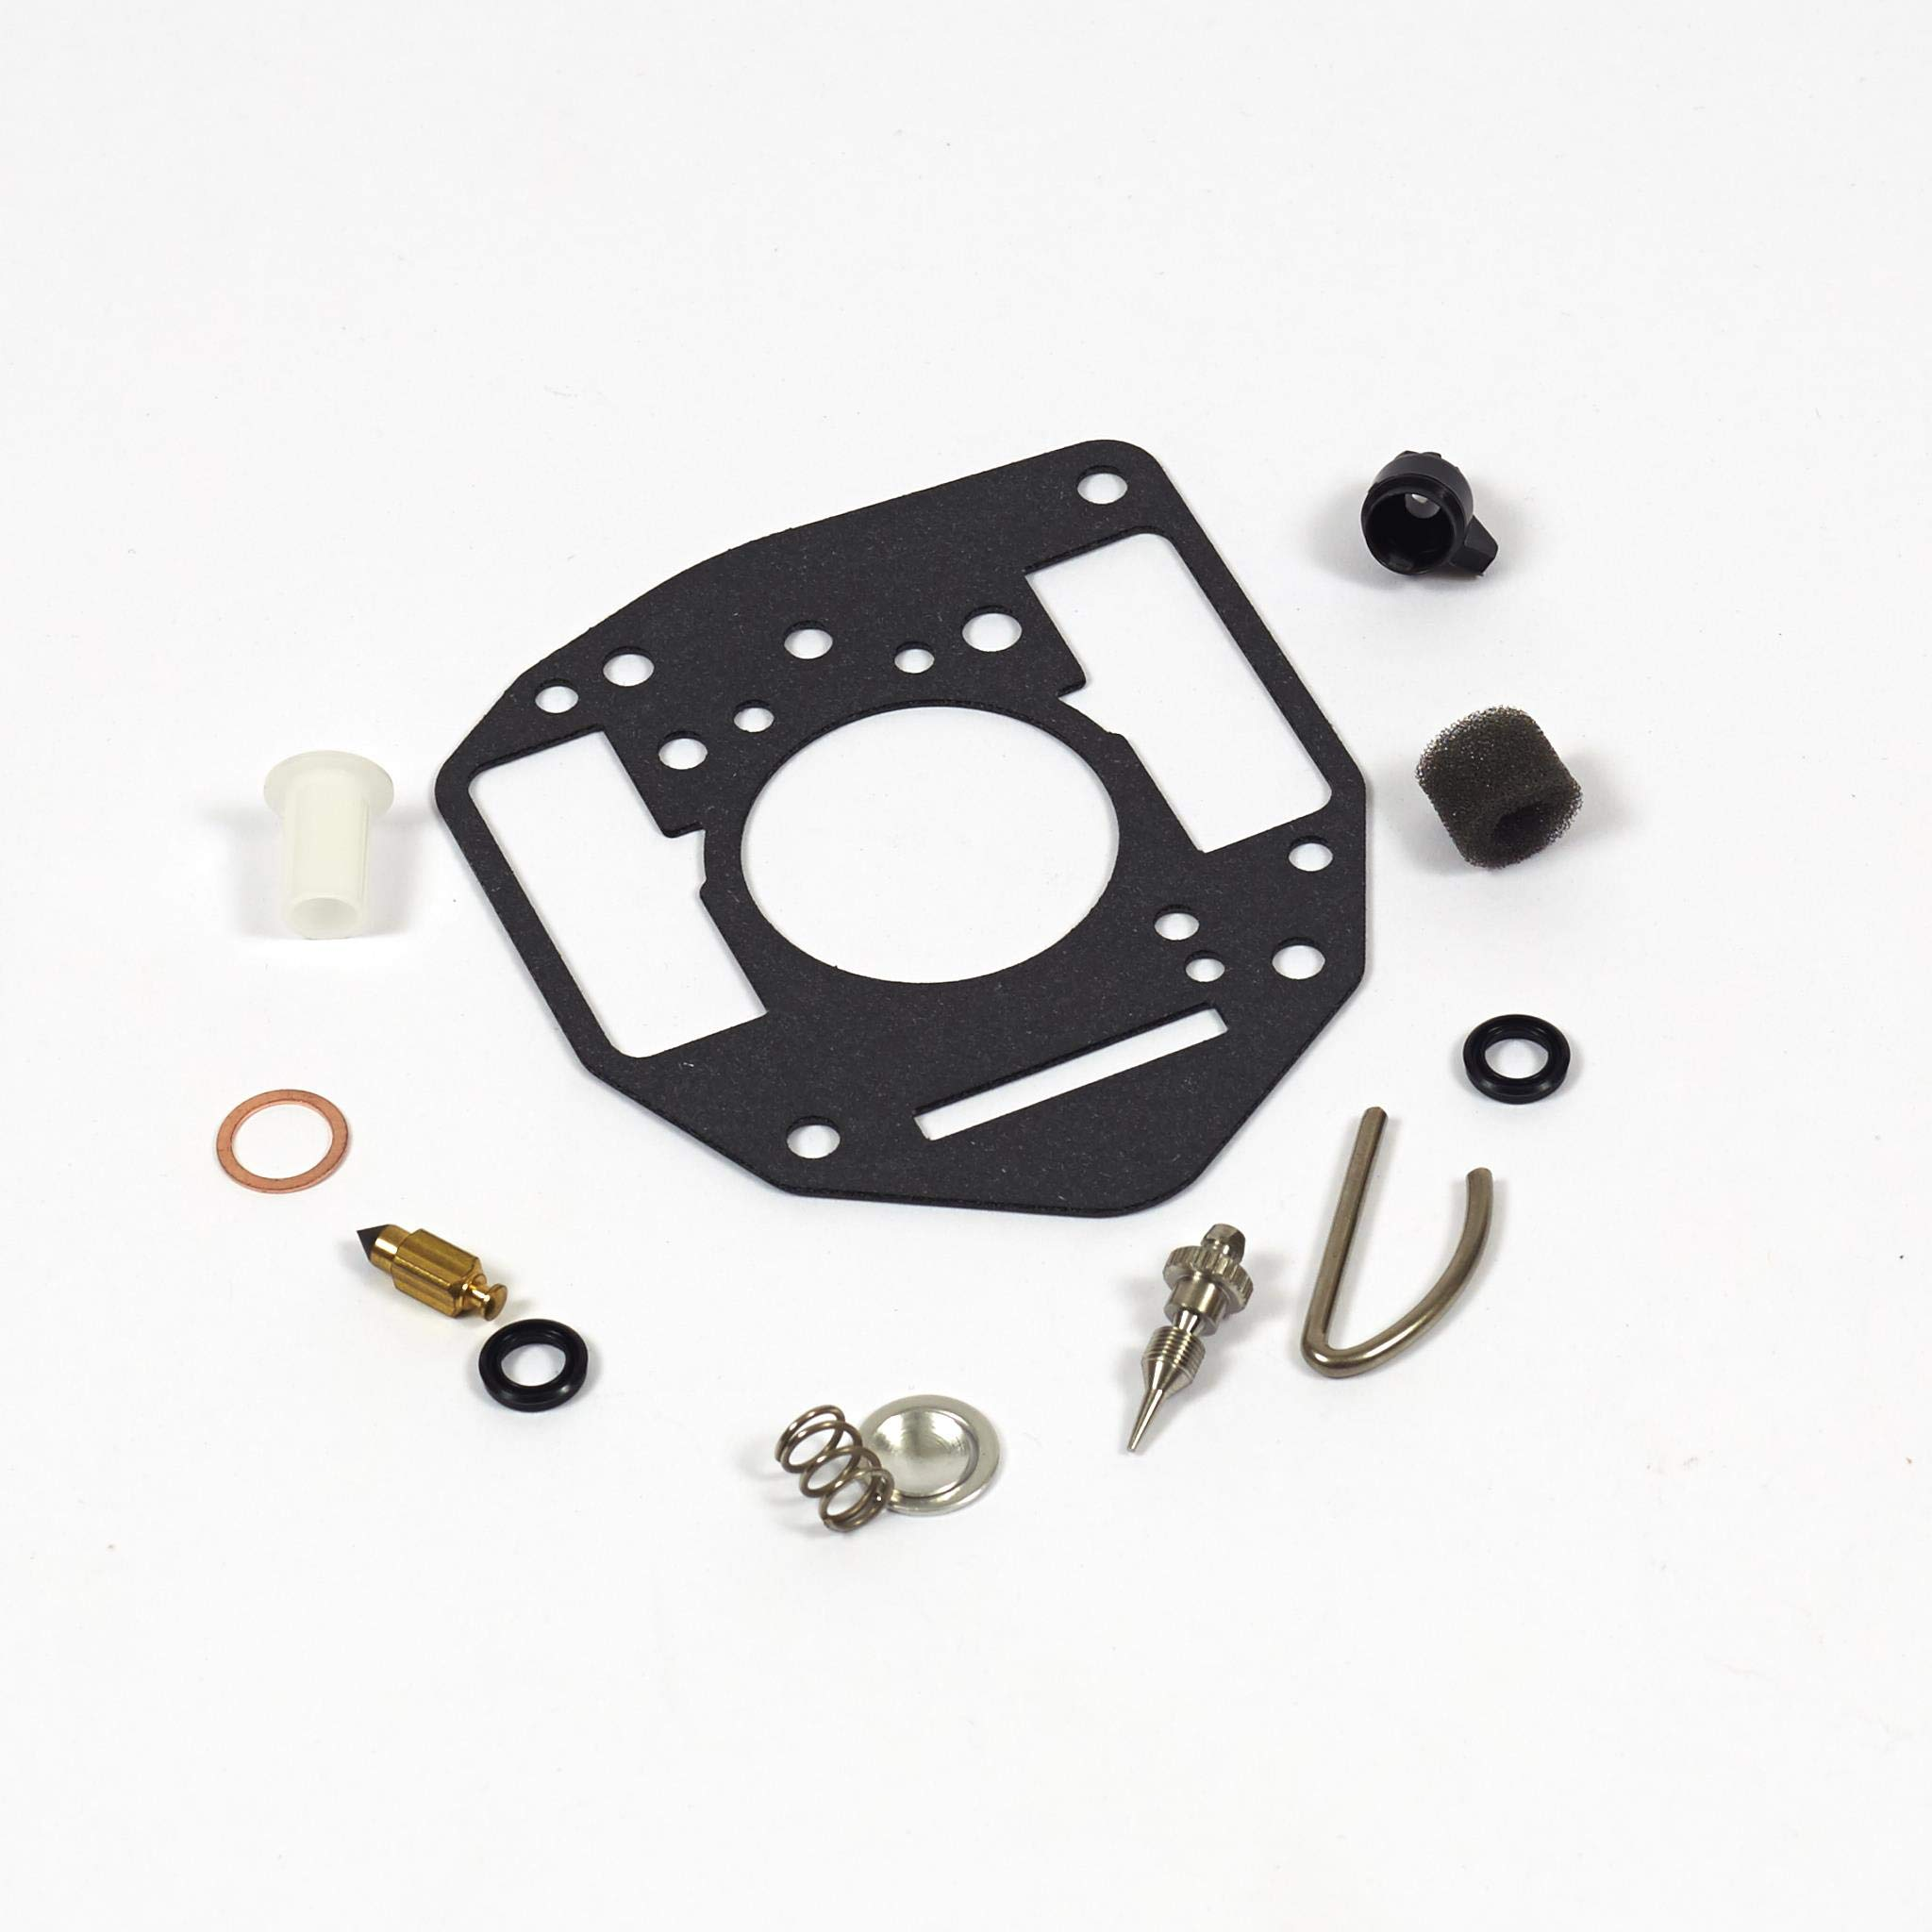 Briggs & Stratton 842881 Carburetor Overhaul Kit